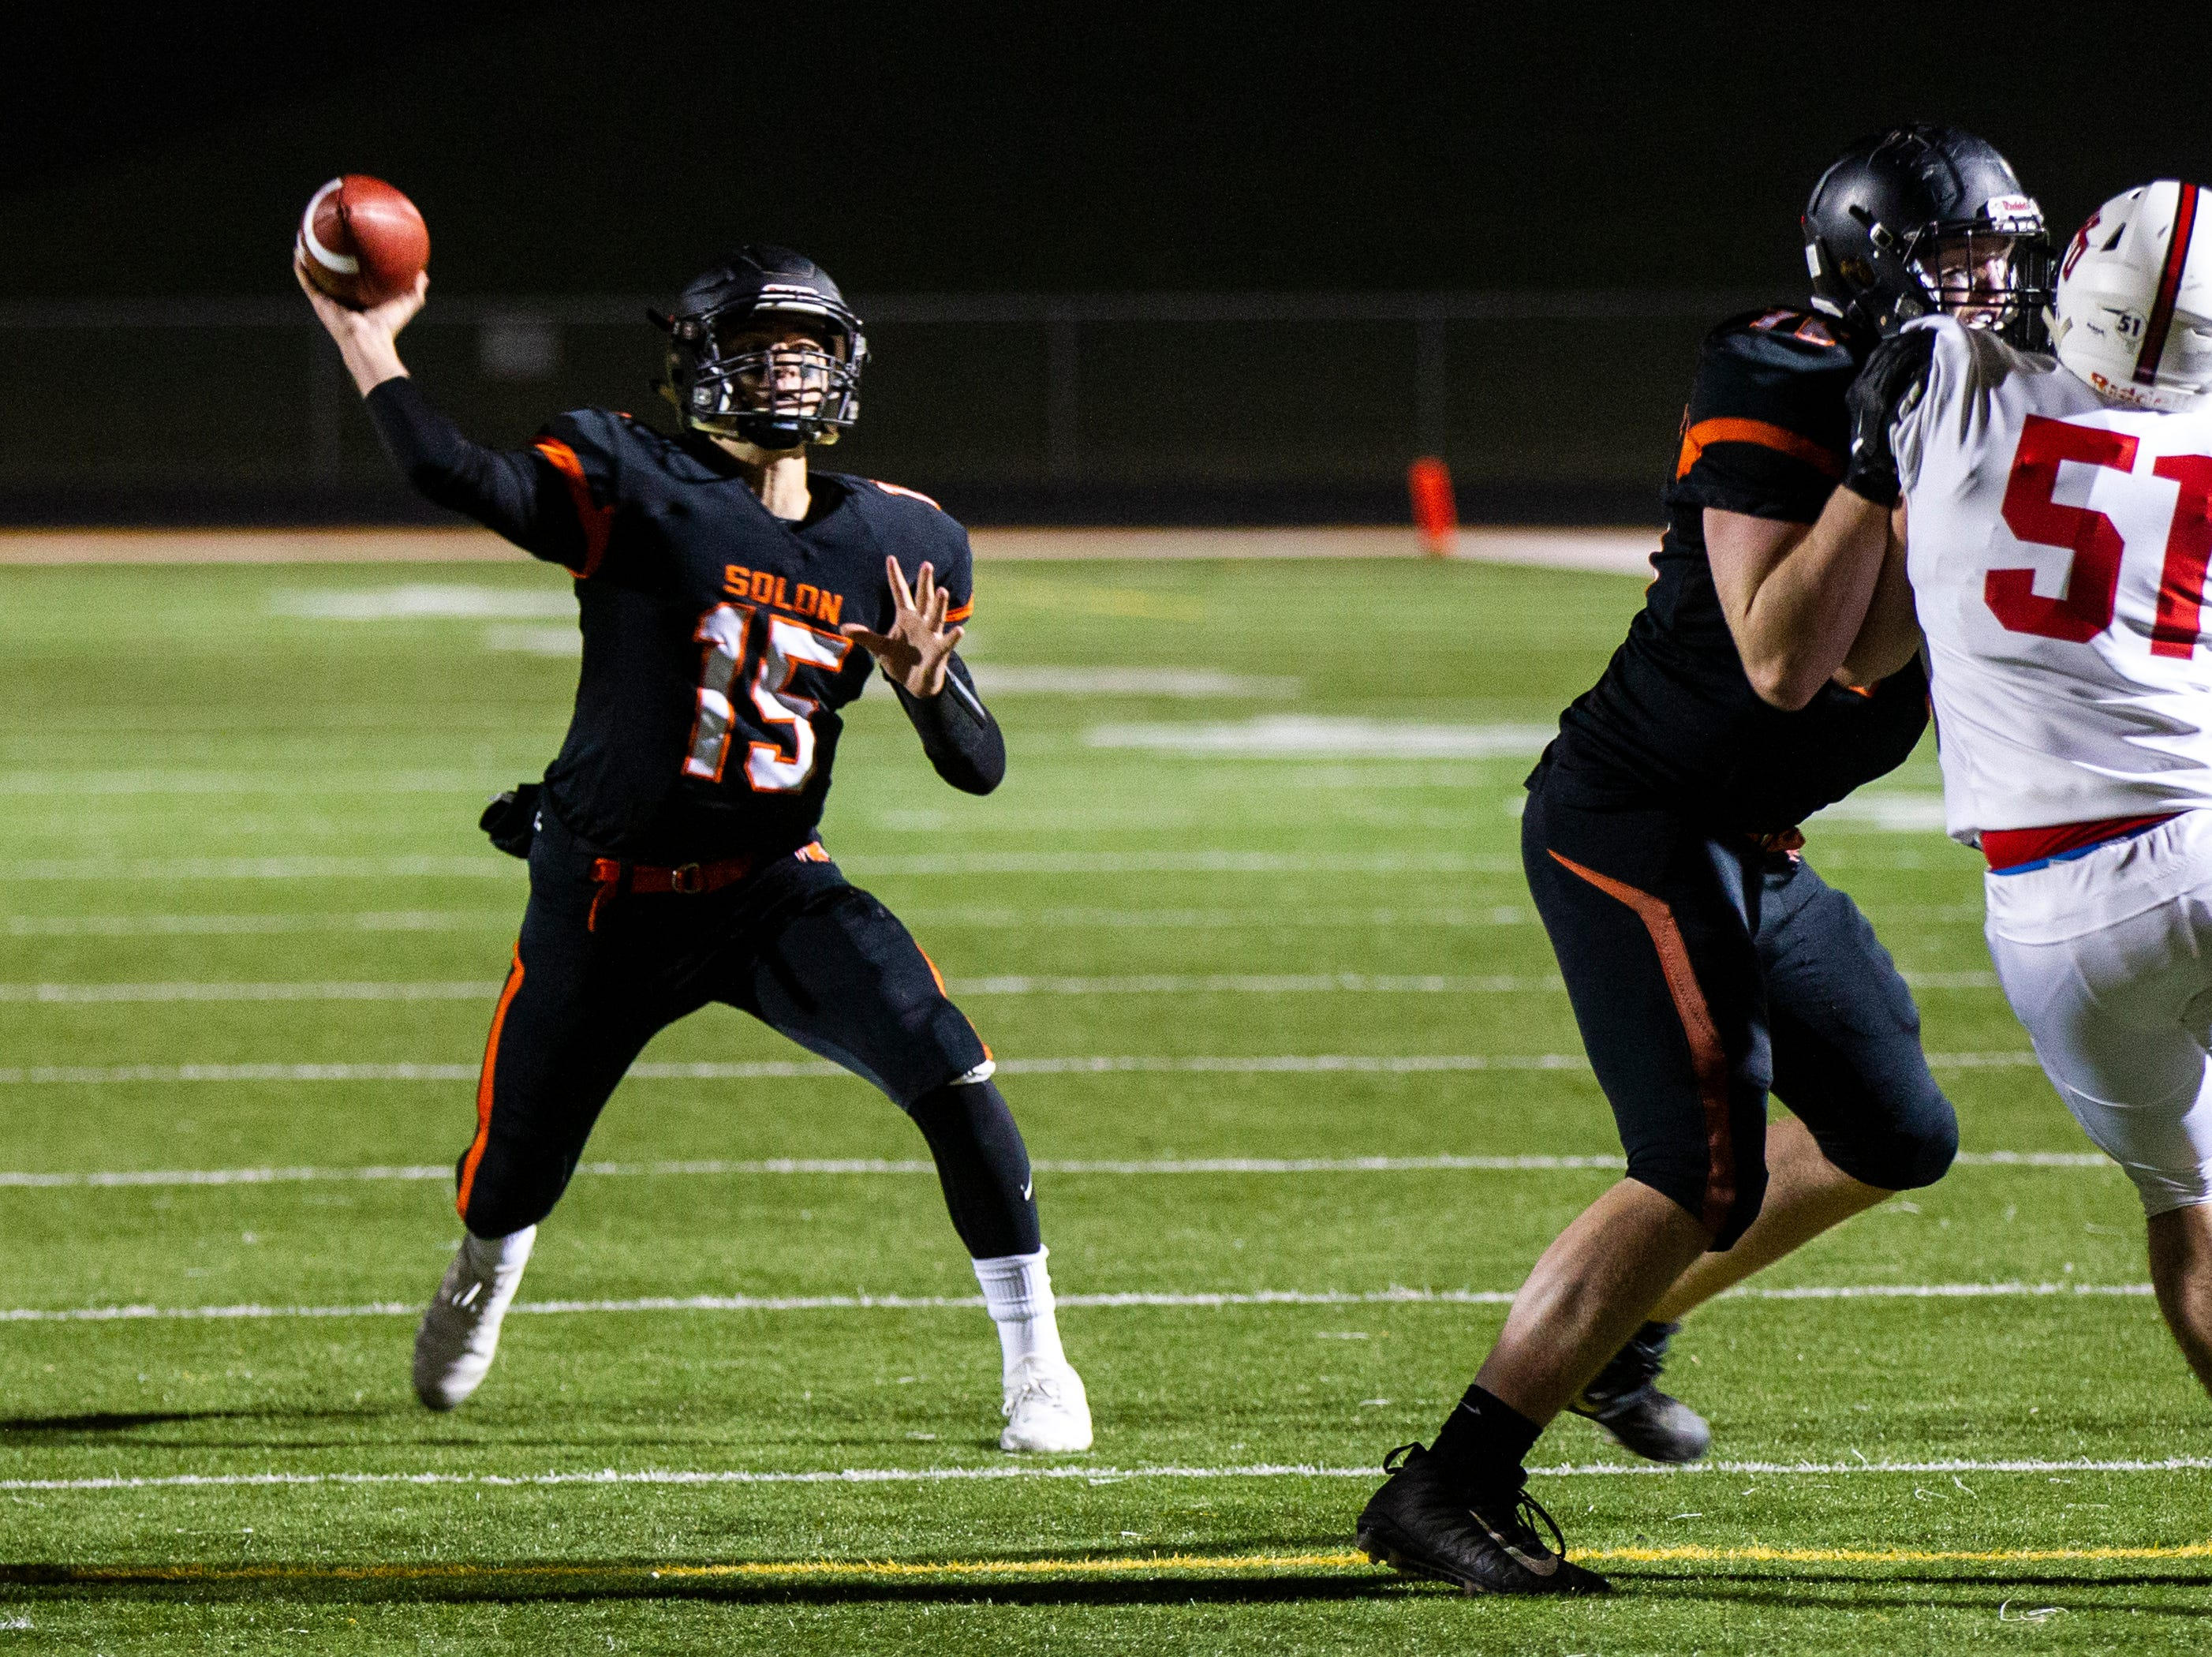 Solon's Mathieux Rehnke passes during a Class 3A varsity first round playoff football game on Friday, Oct. 26, 2018, at Spartan Stadium in Solon, Iowa.